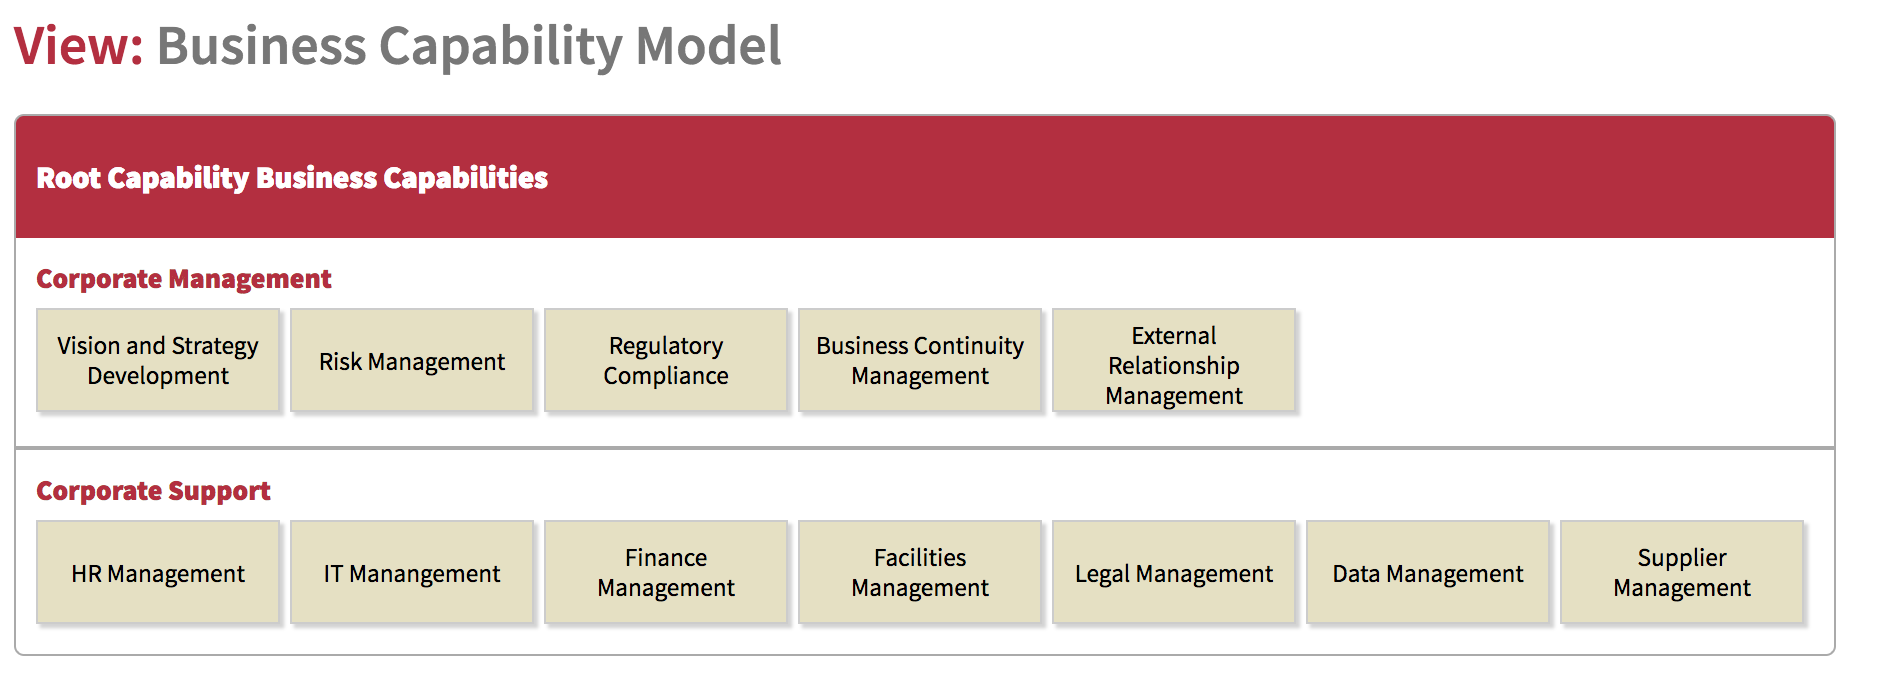 enterprise architecture corporate business capability model